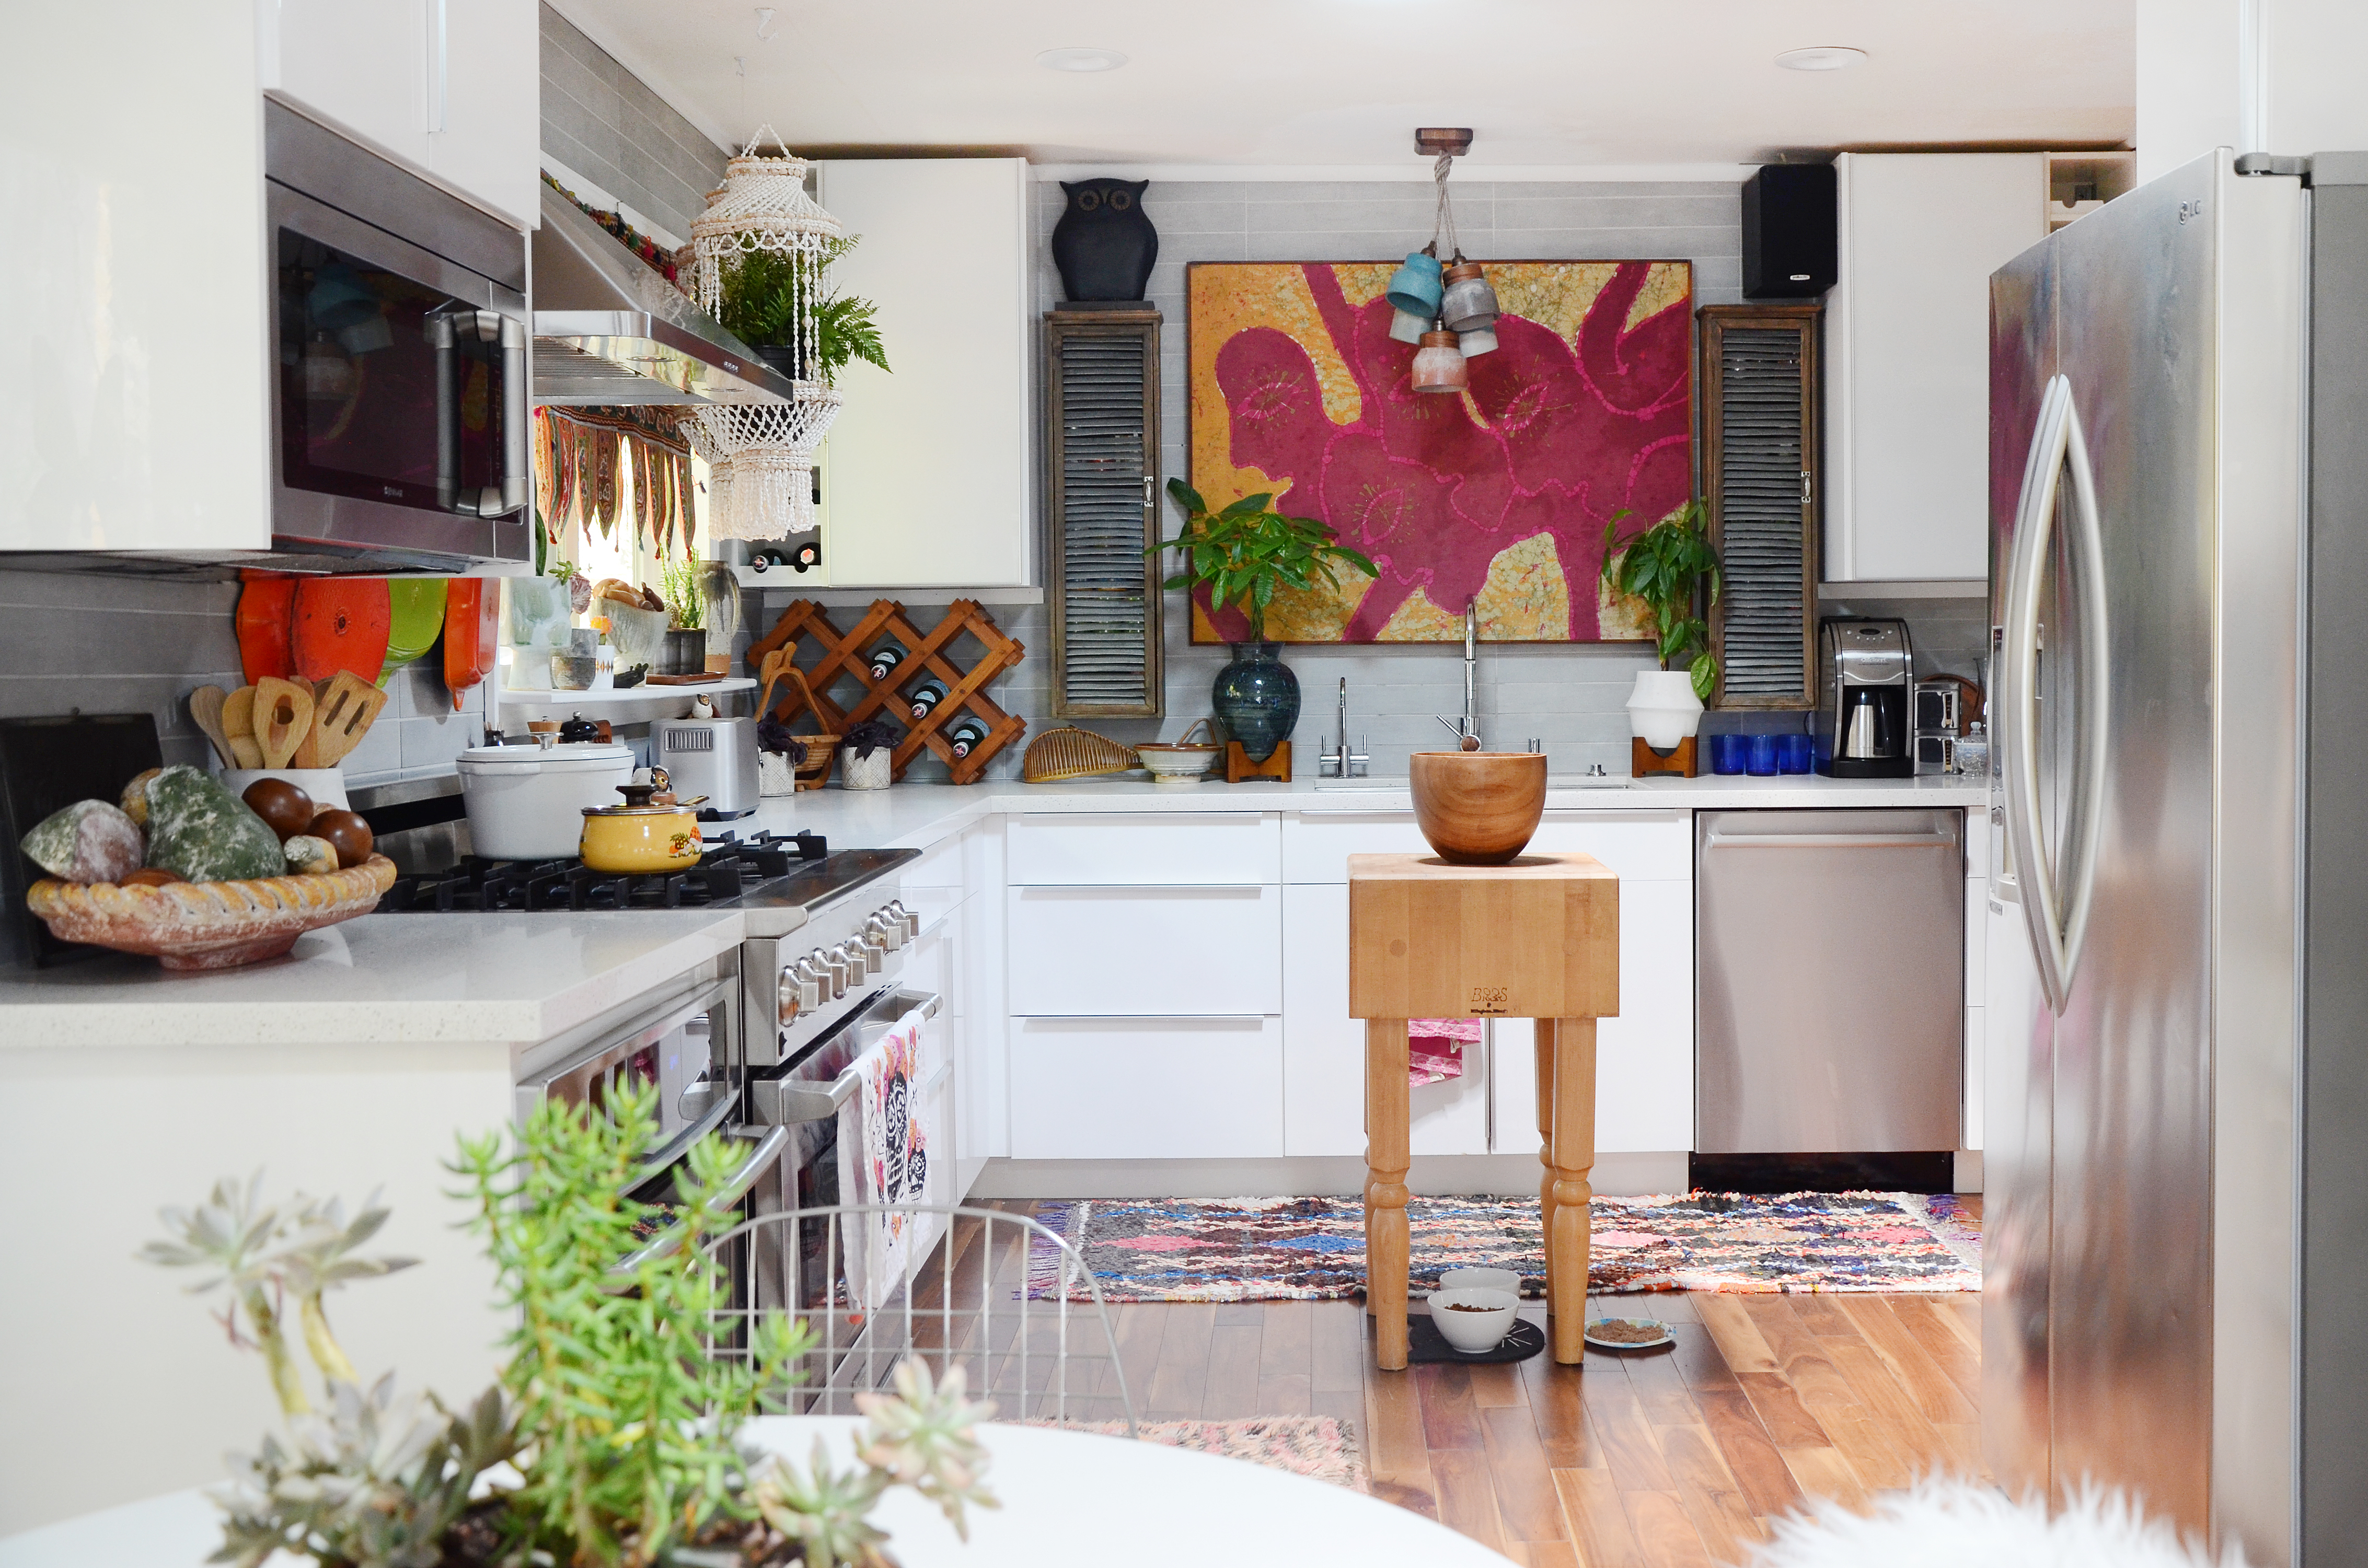 The Best Ways To Organize Your Kitchen According A Nutritionist